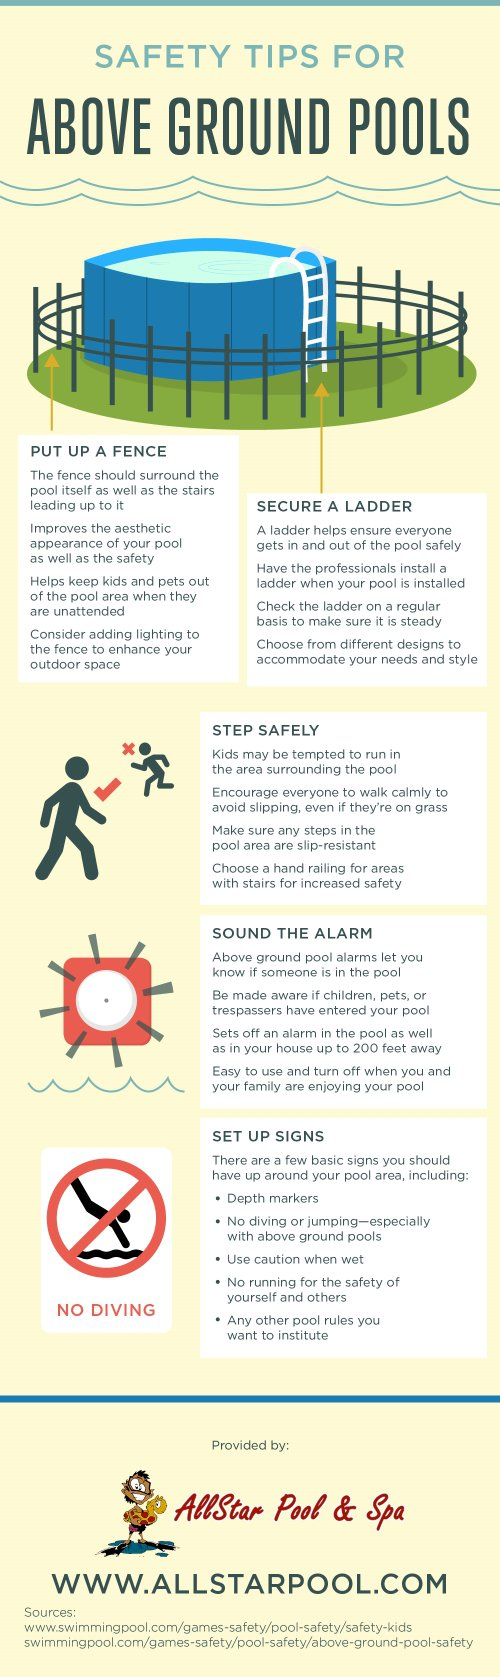 Safety Tips for Above Ground Pools [Infographic]